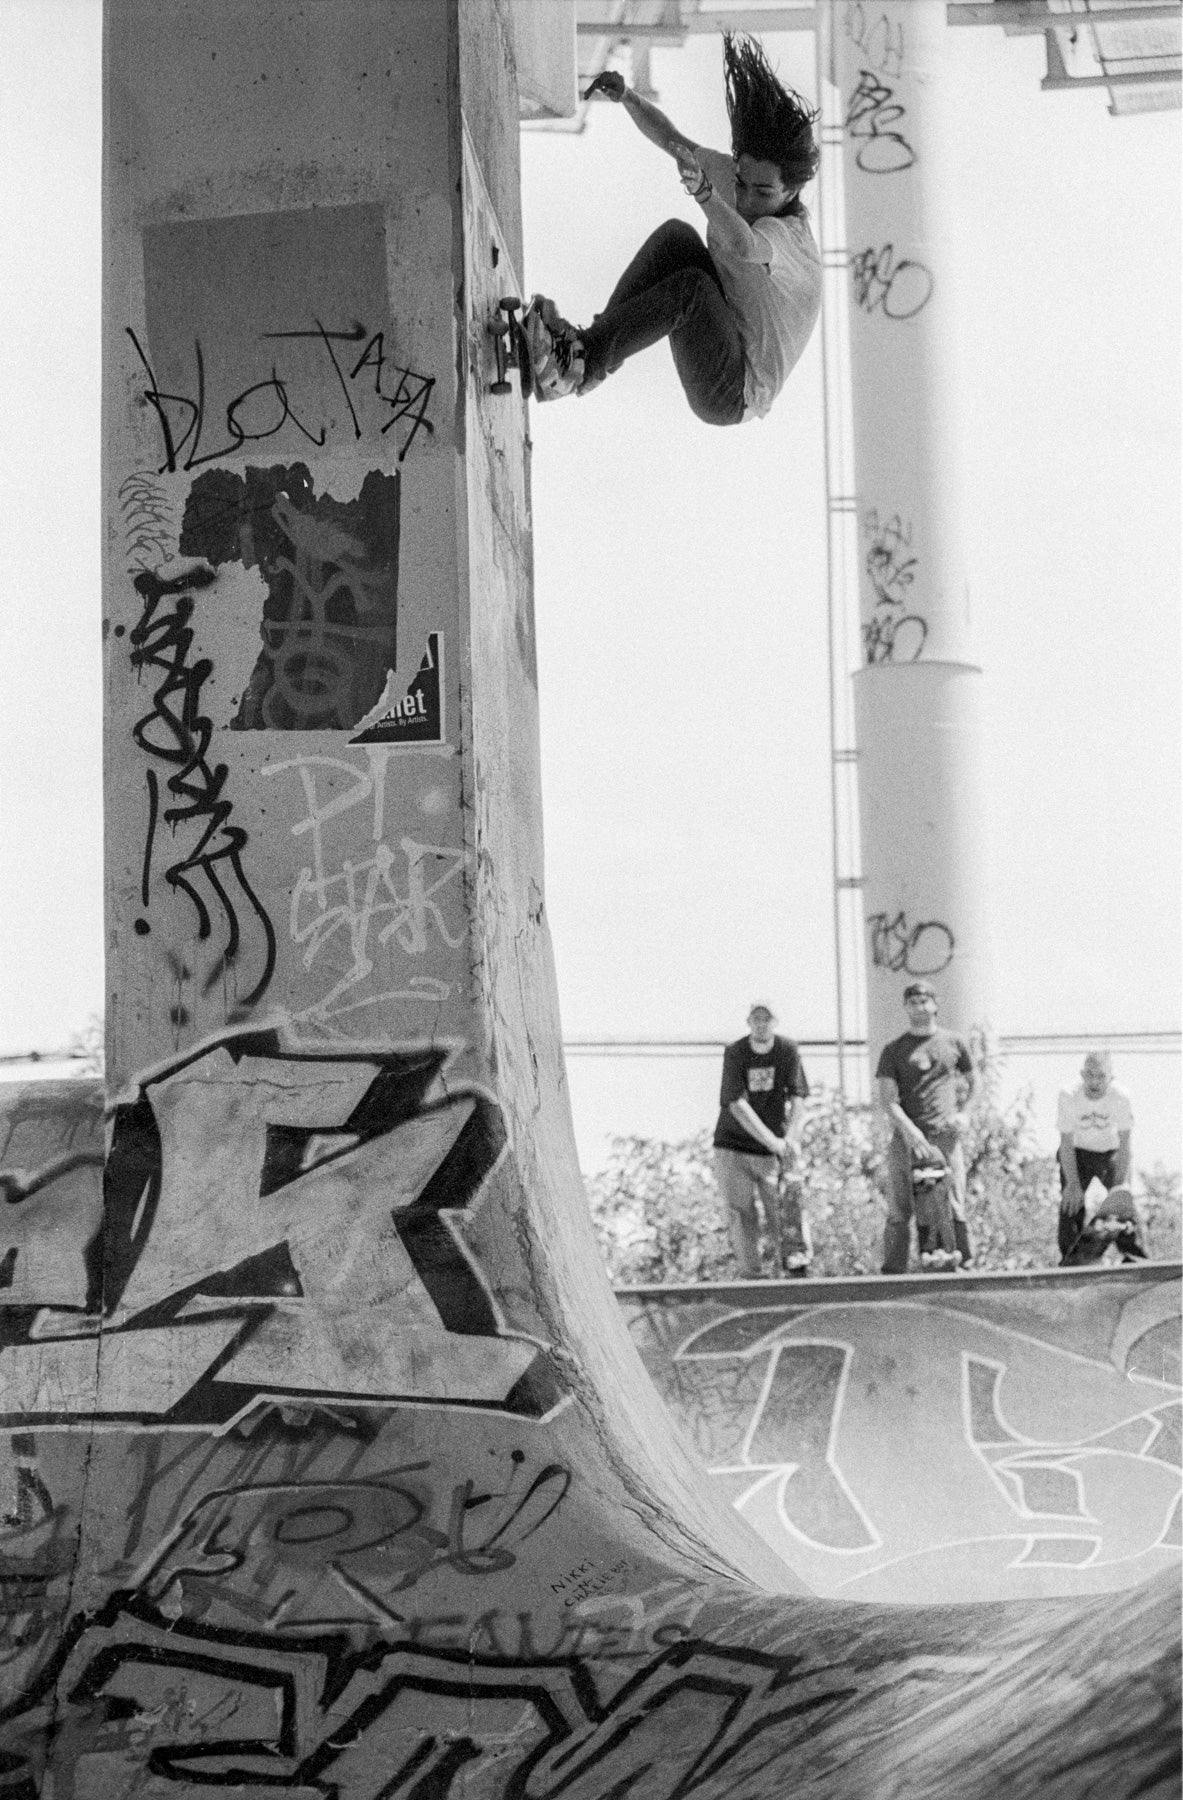 Image of Tony Trujillo, Wall Ride FDR Philadelphia 2003, Anti Hero trip by Tobin Yelland